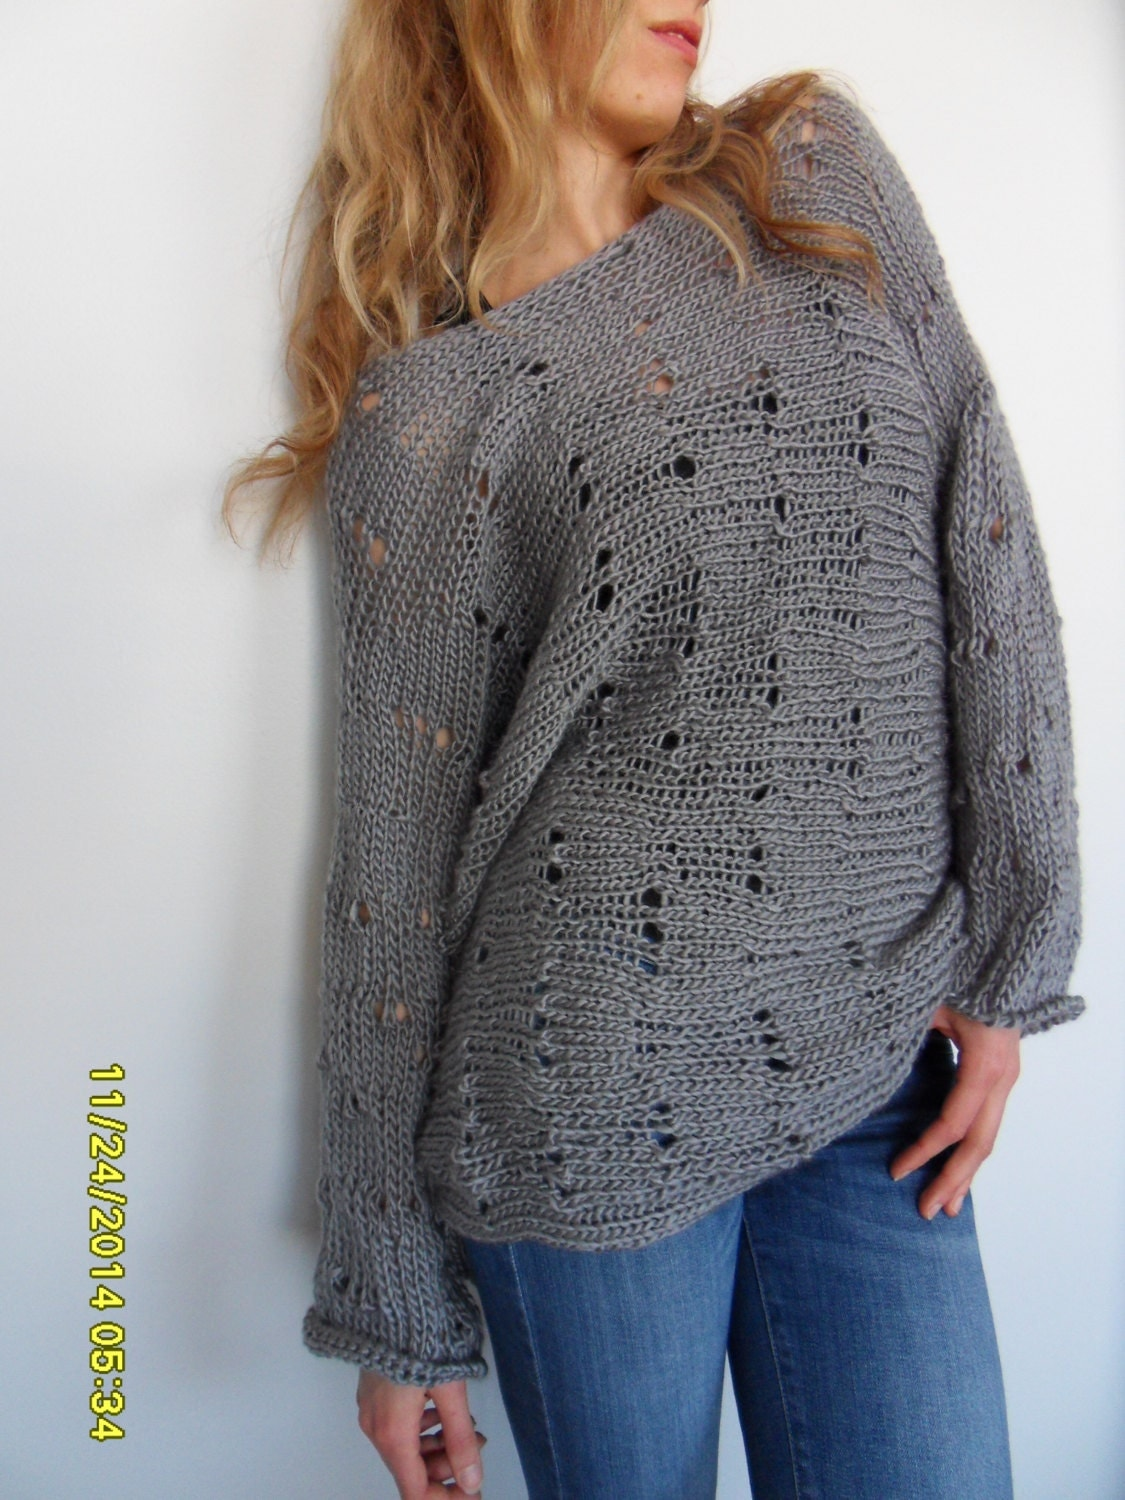 Alpaca Wool Sweaters